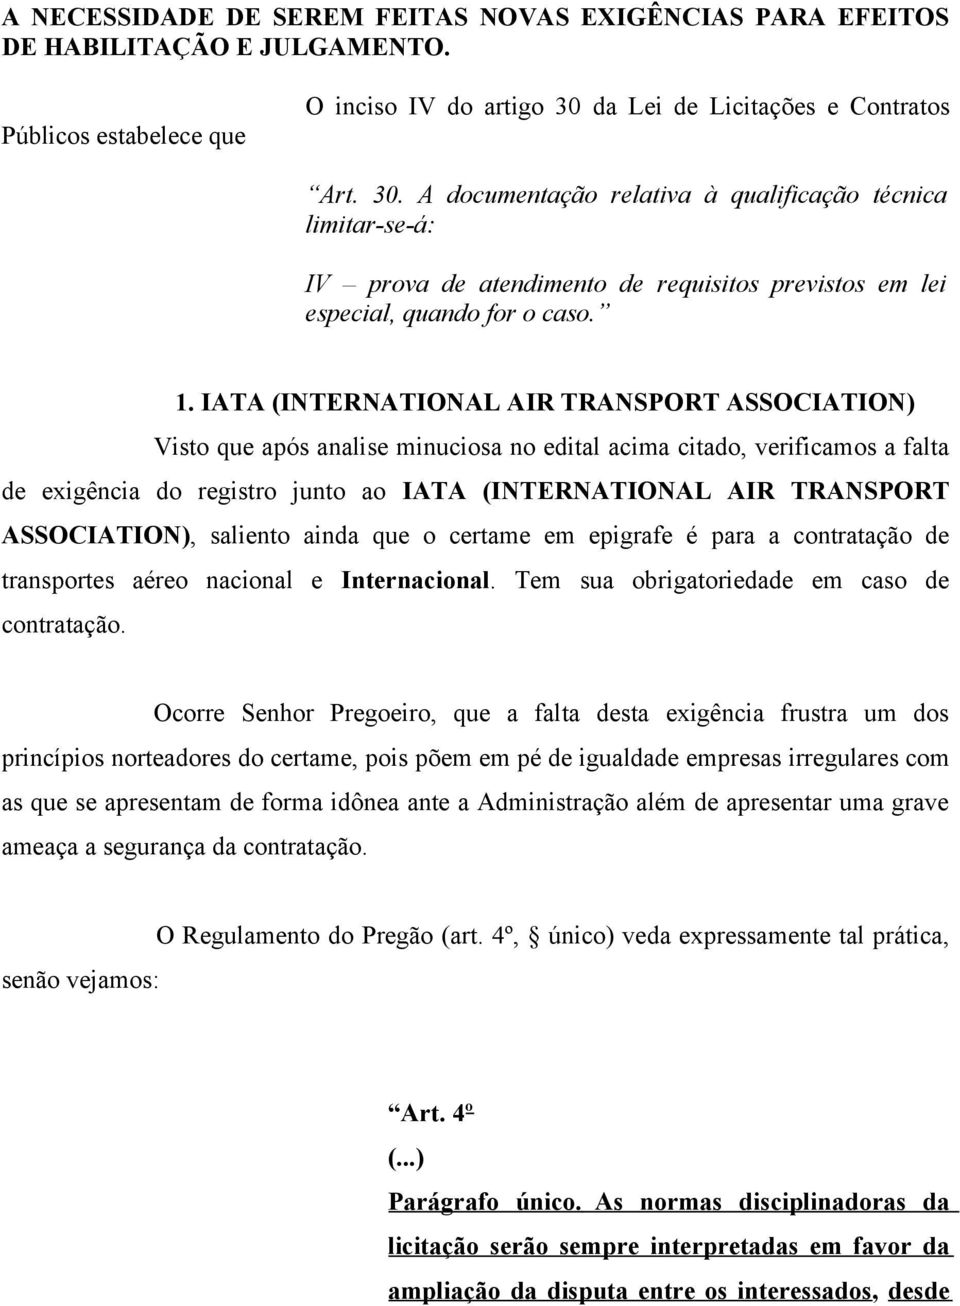 IATA (INTERNATIONAL AIR TRANSPORT ASSOCIATION) Visto que após analise minuciosa no edital acima citado, verificamos a falta de exigência do registro junto ao IATA (INTERNATIONAL AIR TRANSPORT